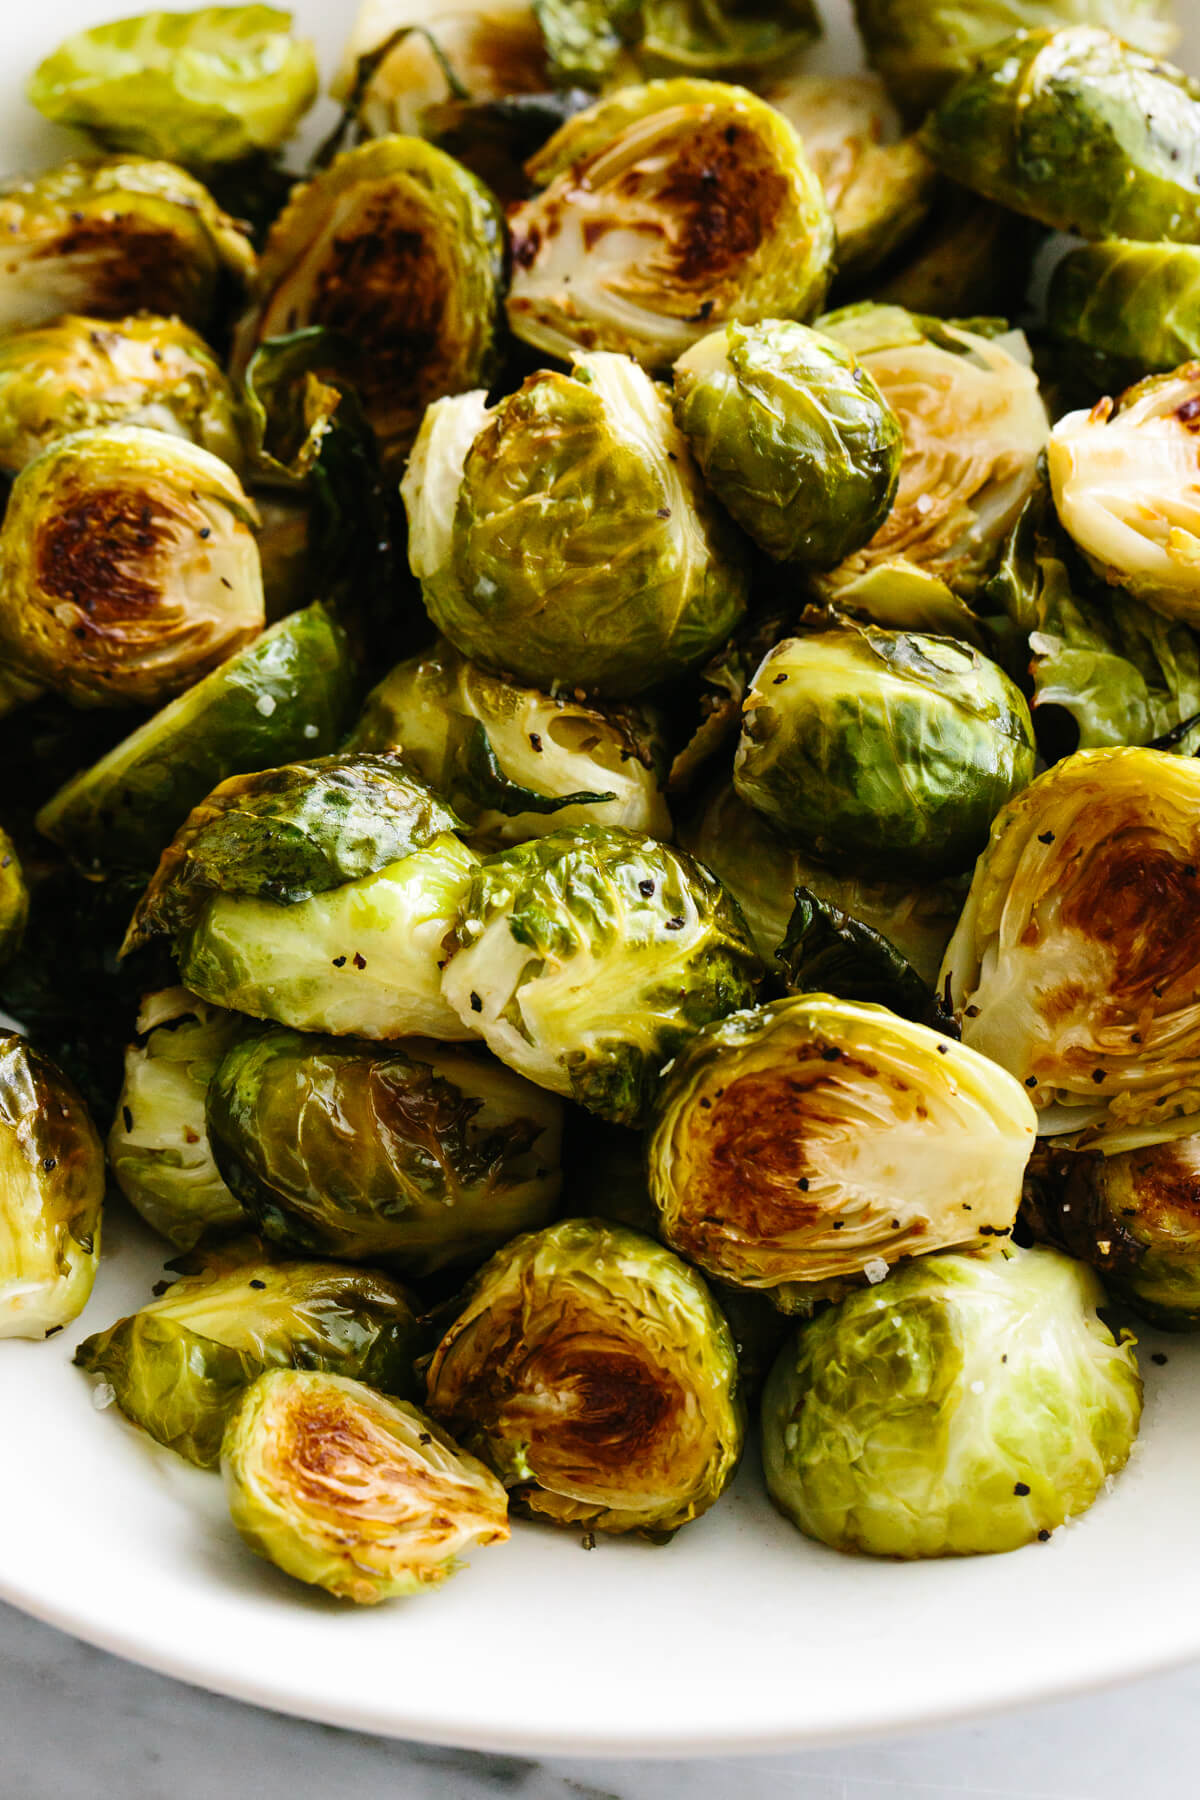 Roasted brussels sprouts in a large white bowl.